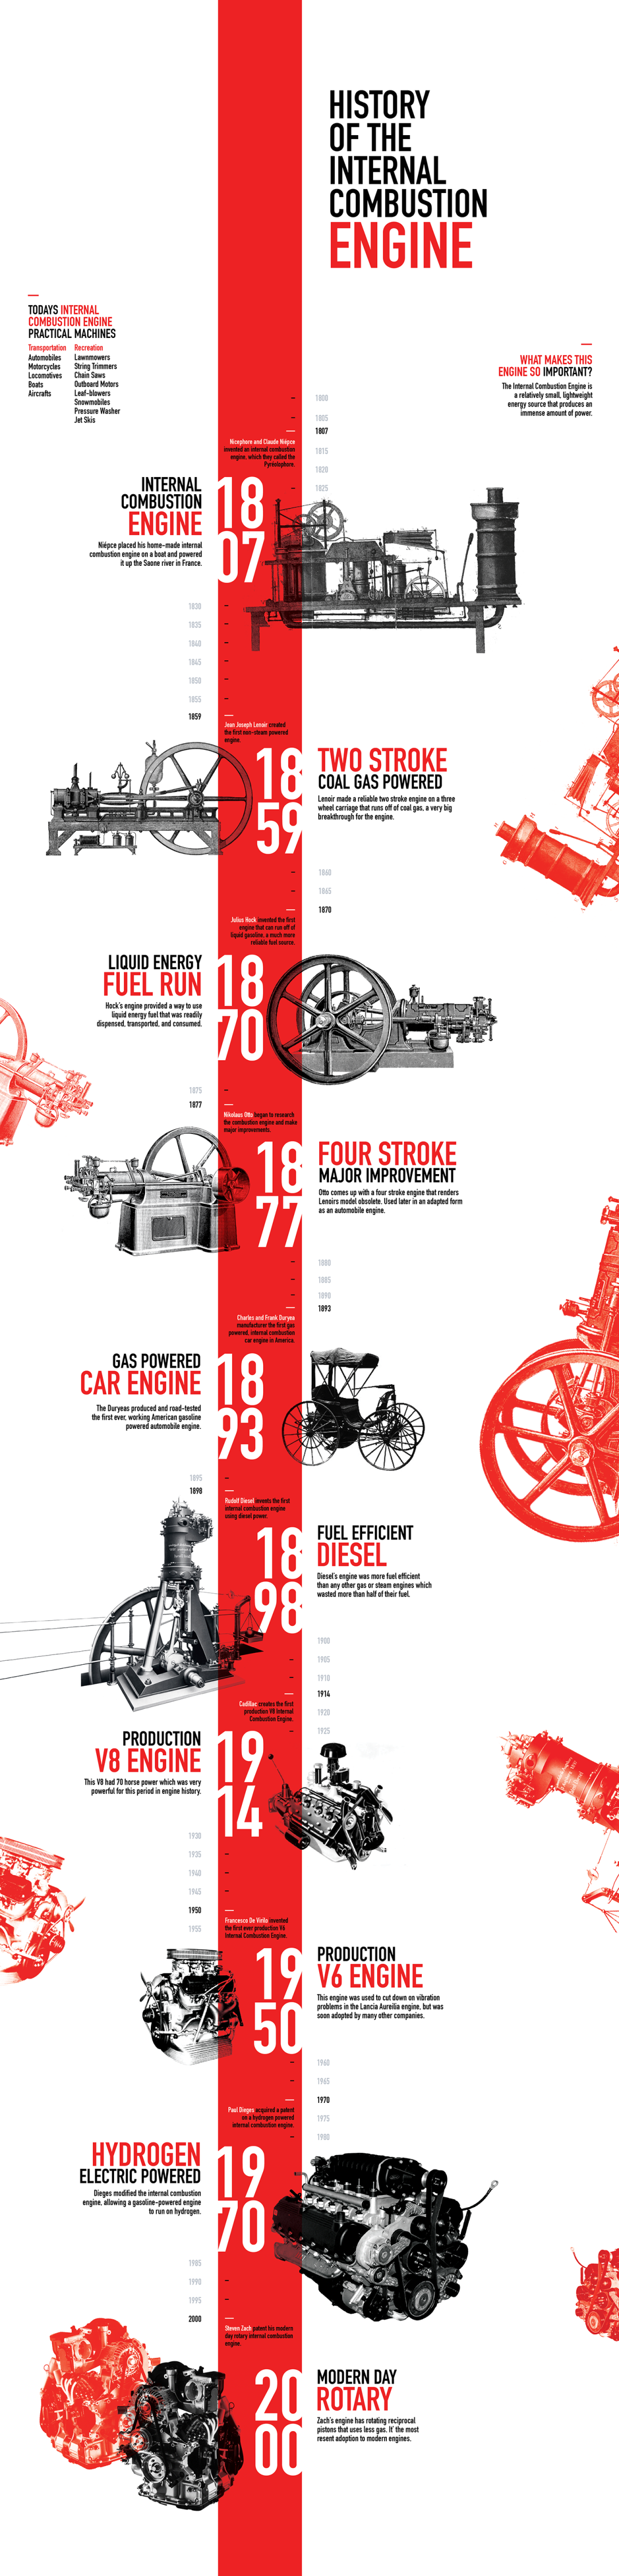 History of the Internal Combustion Engine Infographic